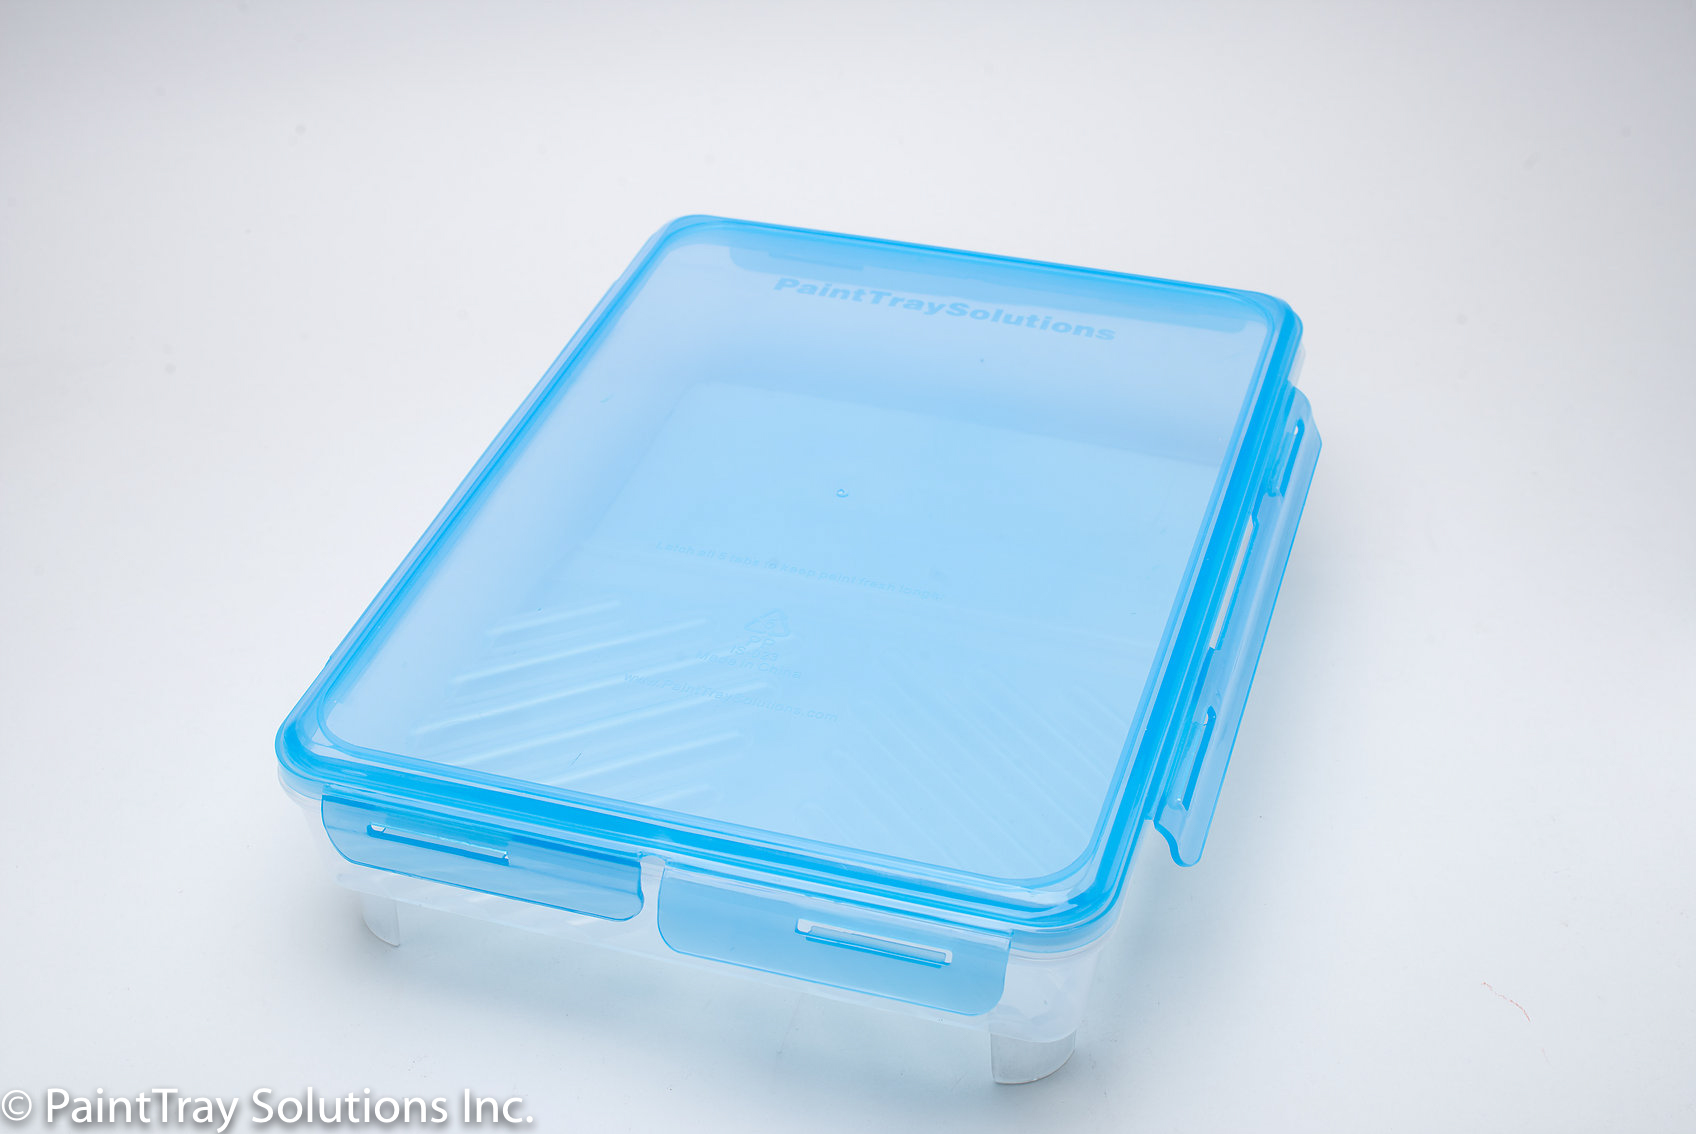 PaintTray product